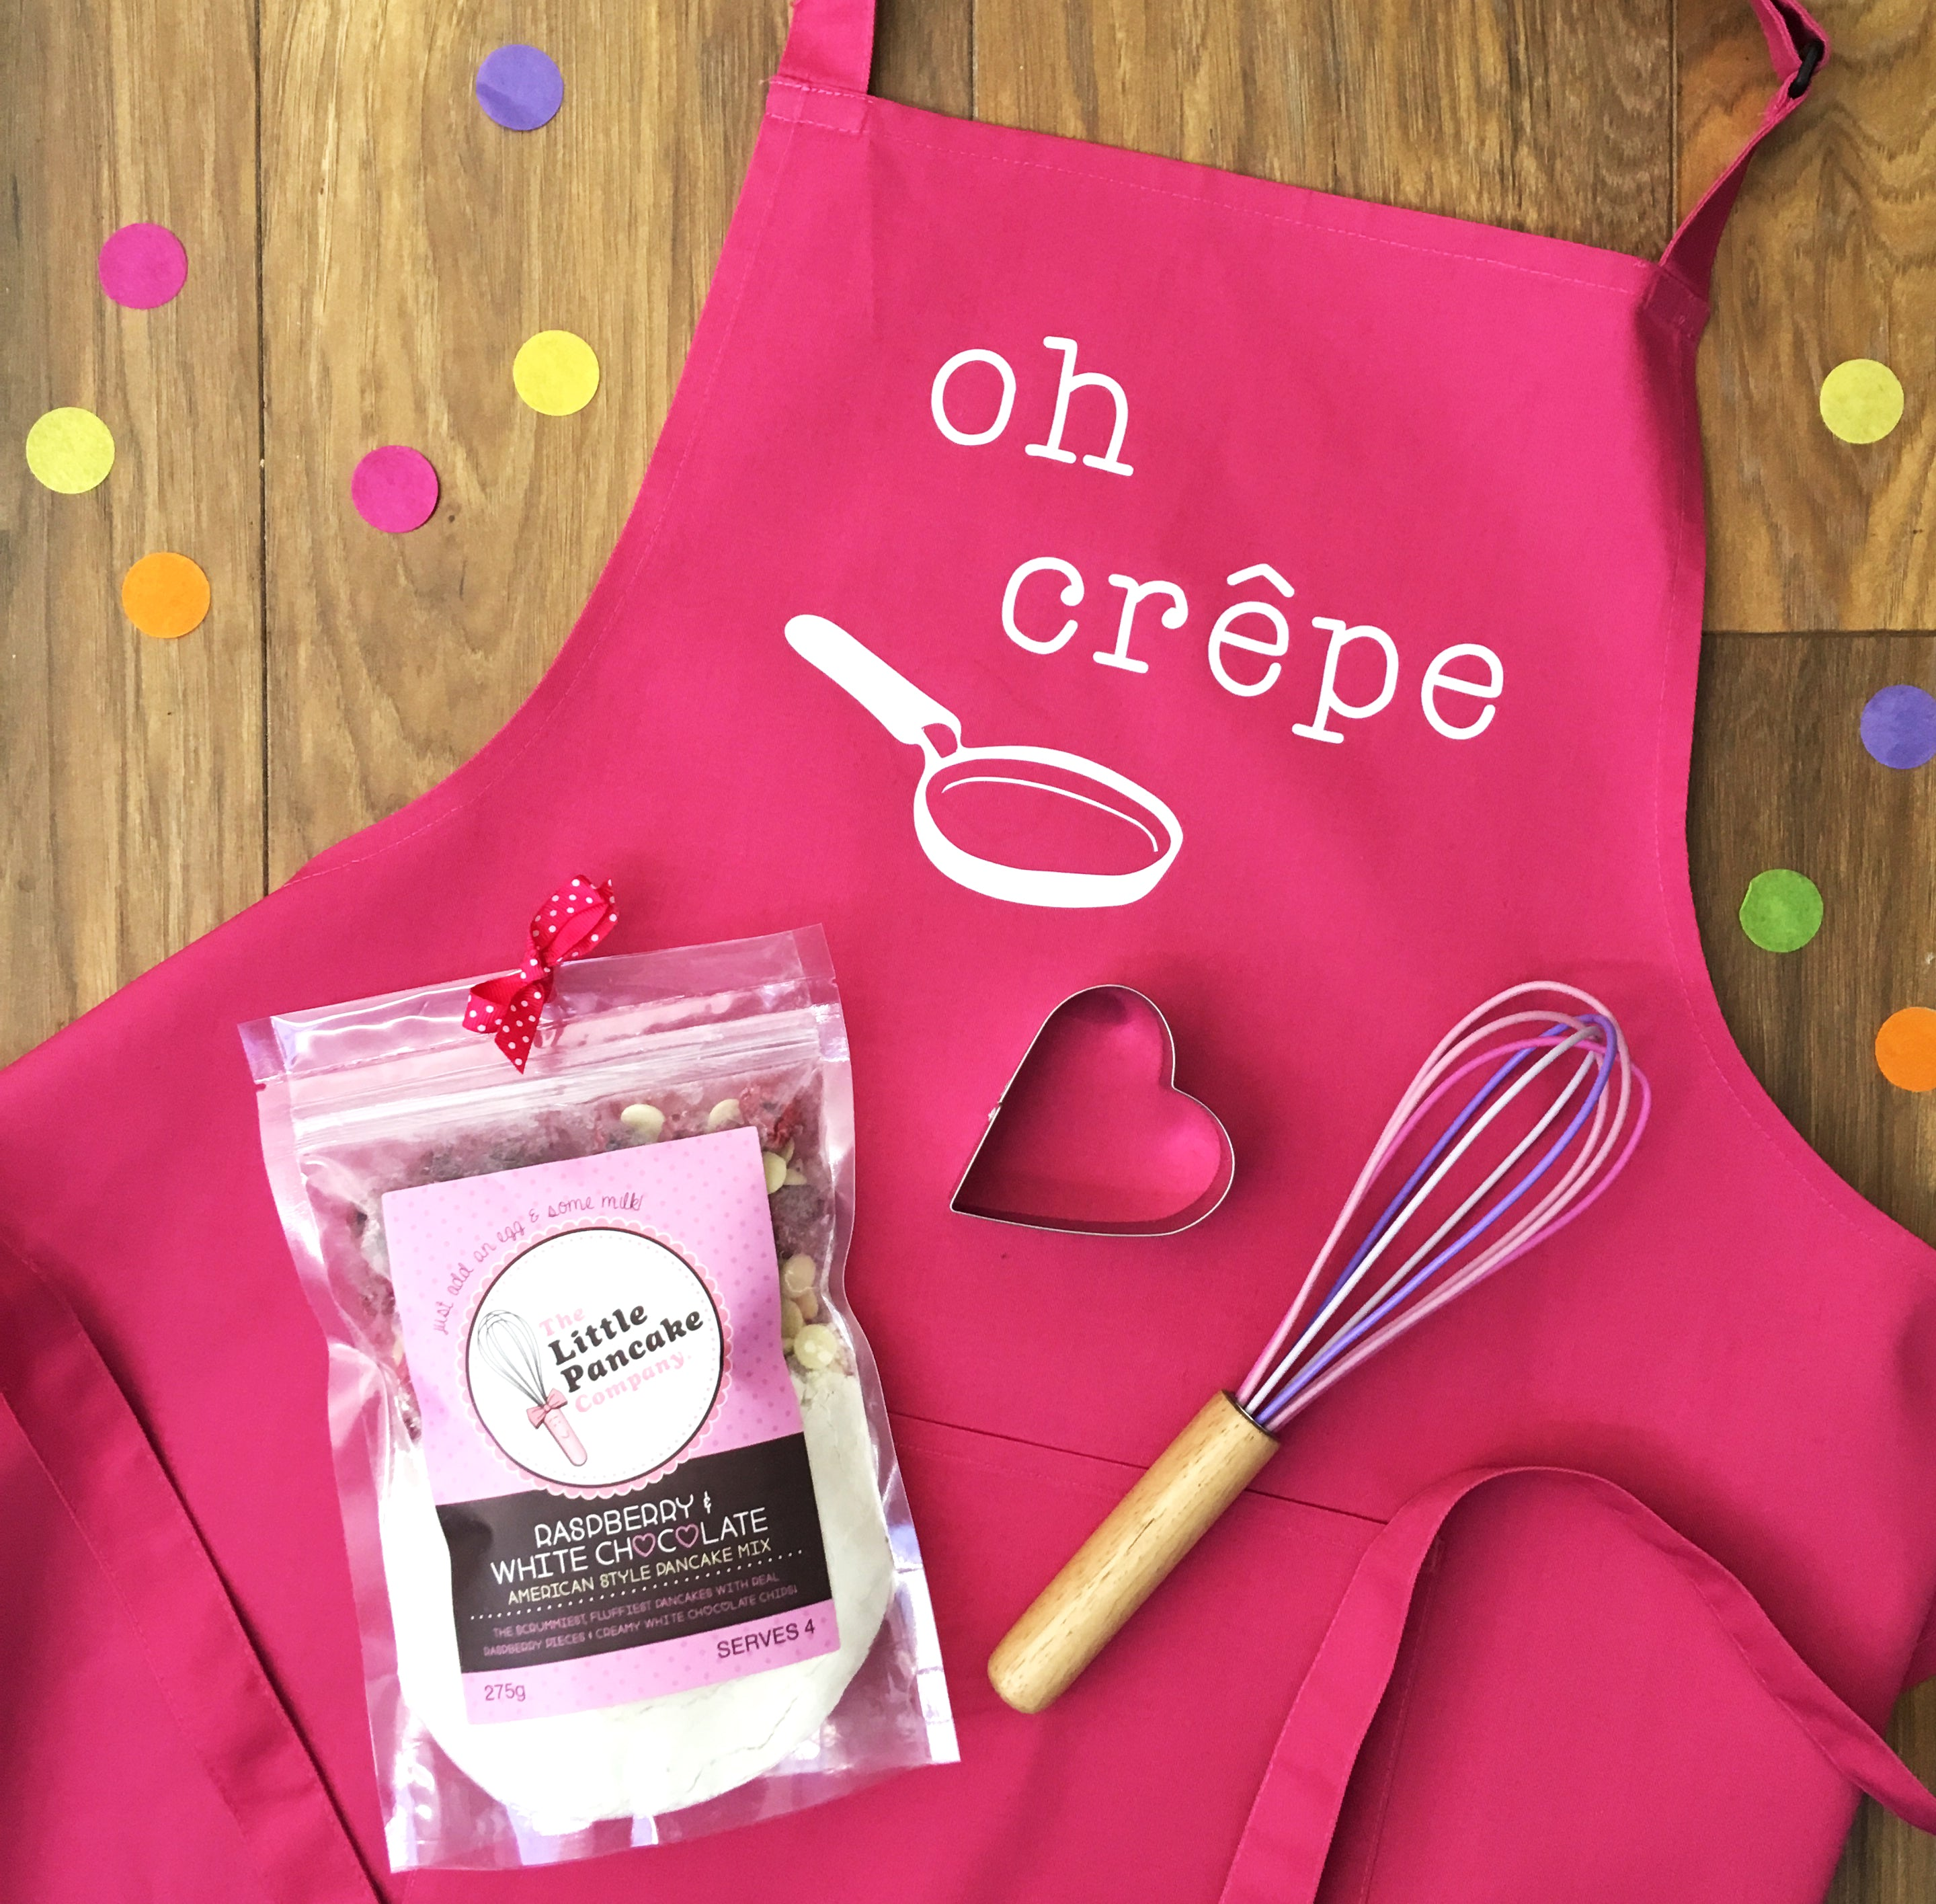 Pancake Mix Gift Set with Apron, Whisk and Cutter - The Little ...